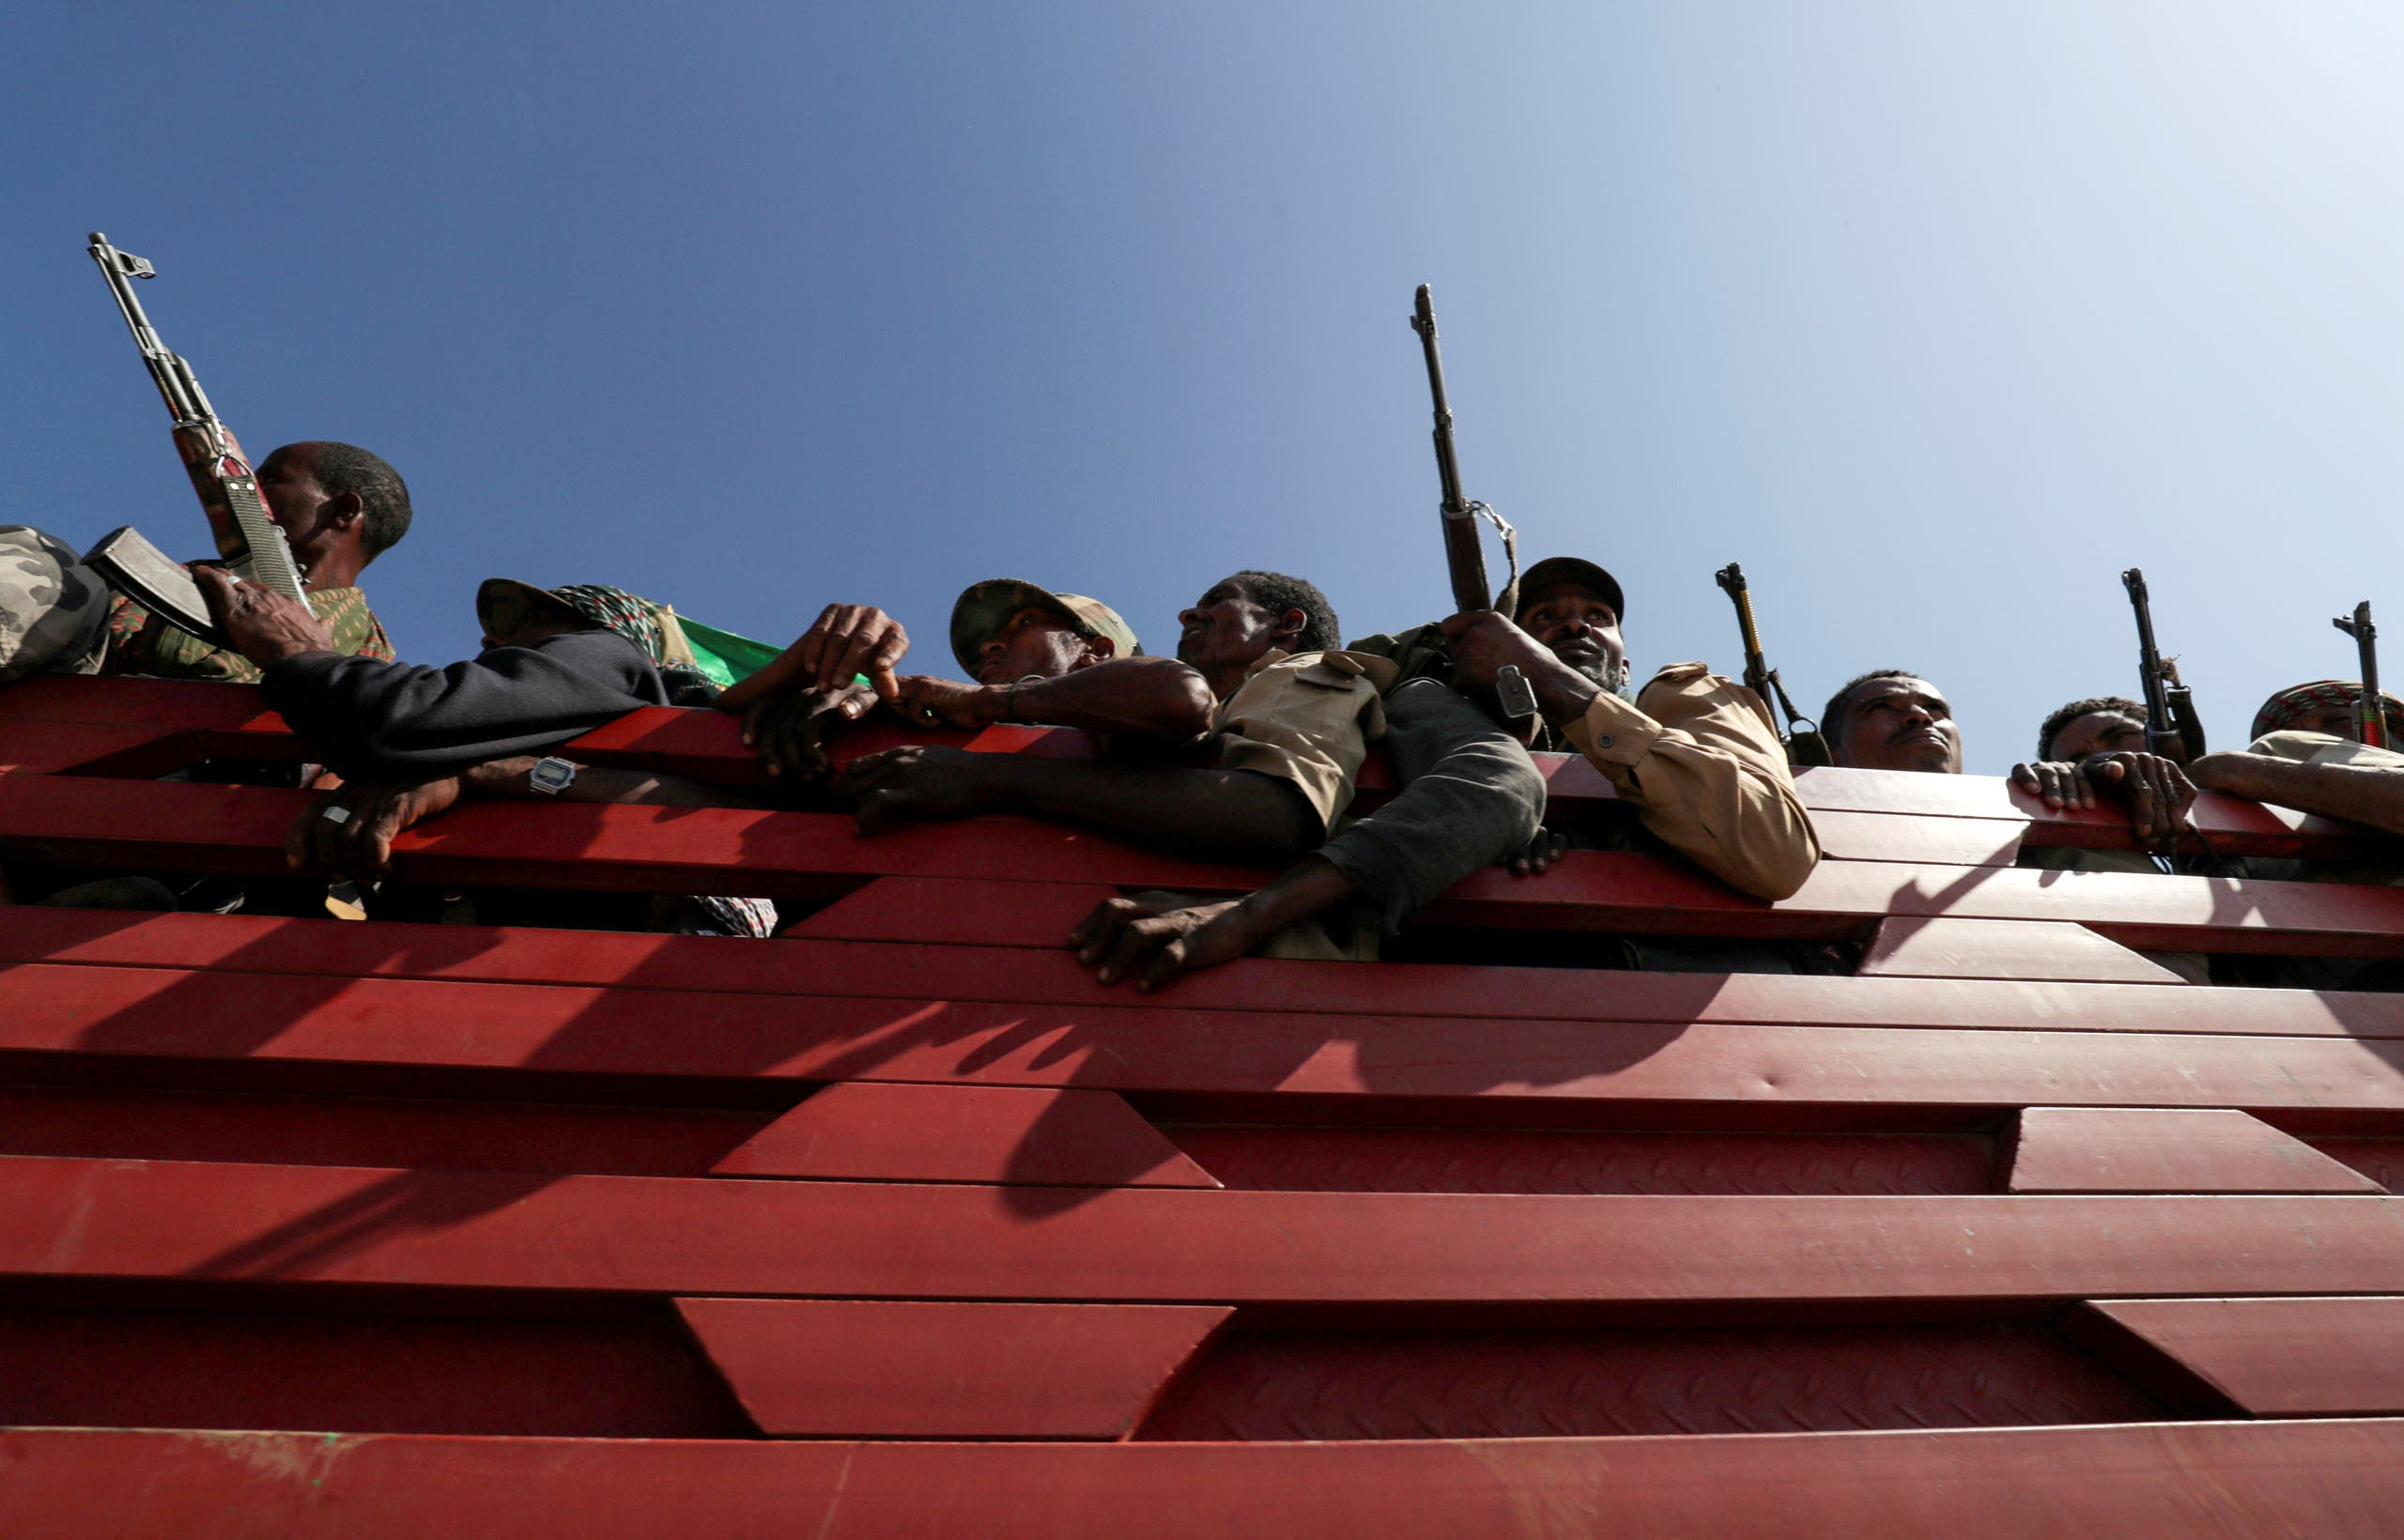 Militia members from Ethiopia's Amhara region ride on their truck as they head to face the Tigray People's Liberation Front (TPLF), in Sanja, Amhara region near a border with Tigray, Ethiopia November 9, 2020. (File photo: Reuters)